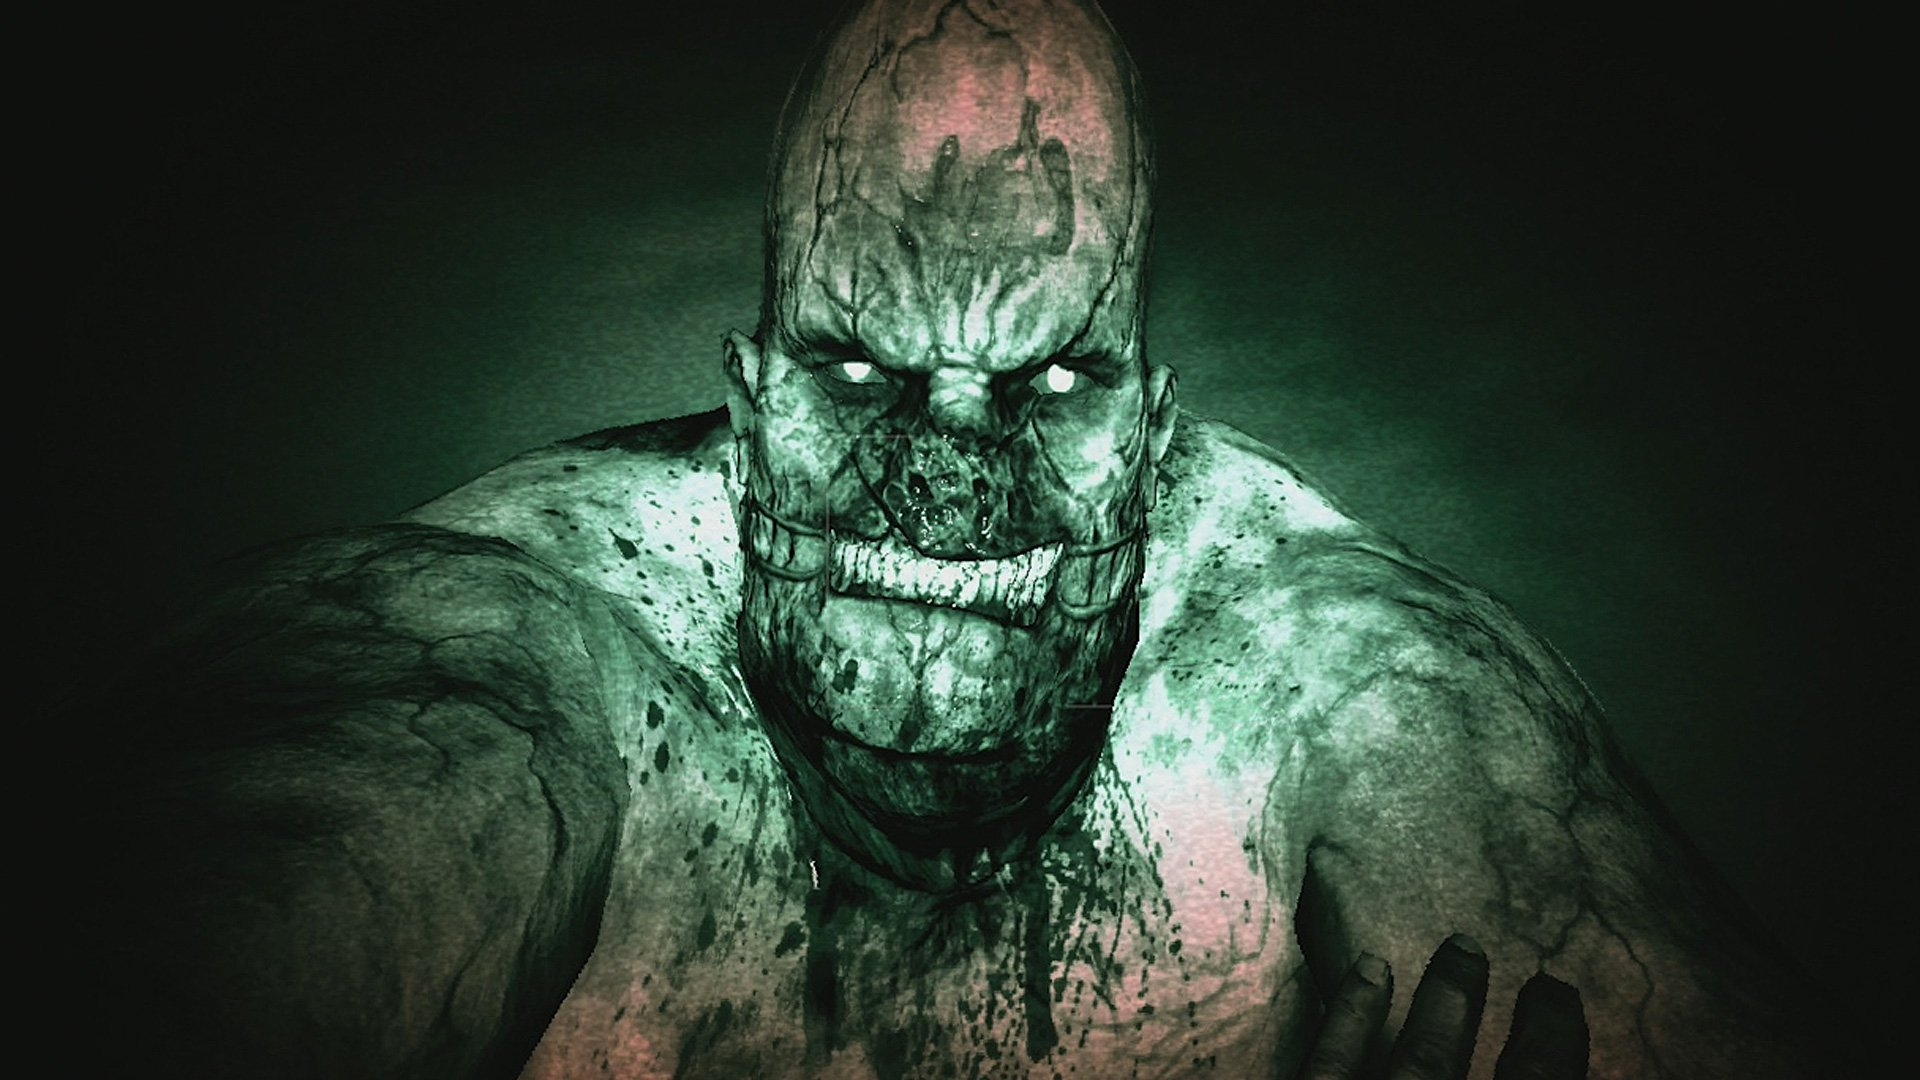 Win one of five copies of Outlast 2 on PC from GOG.com and